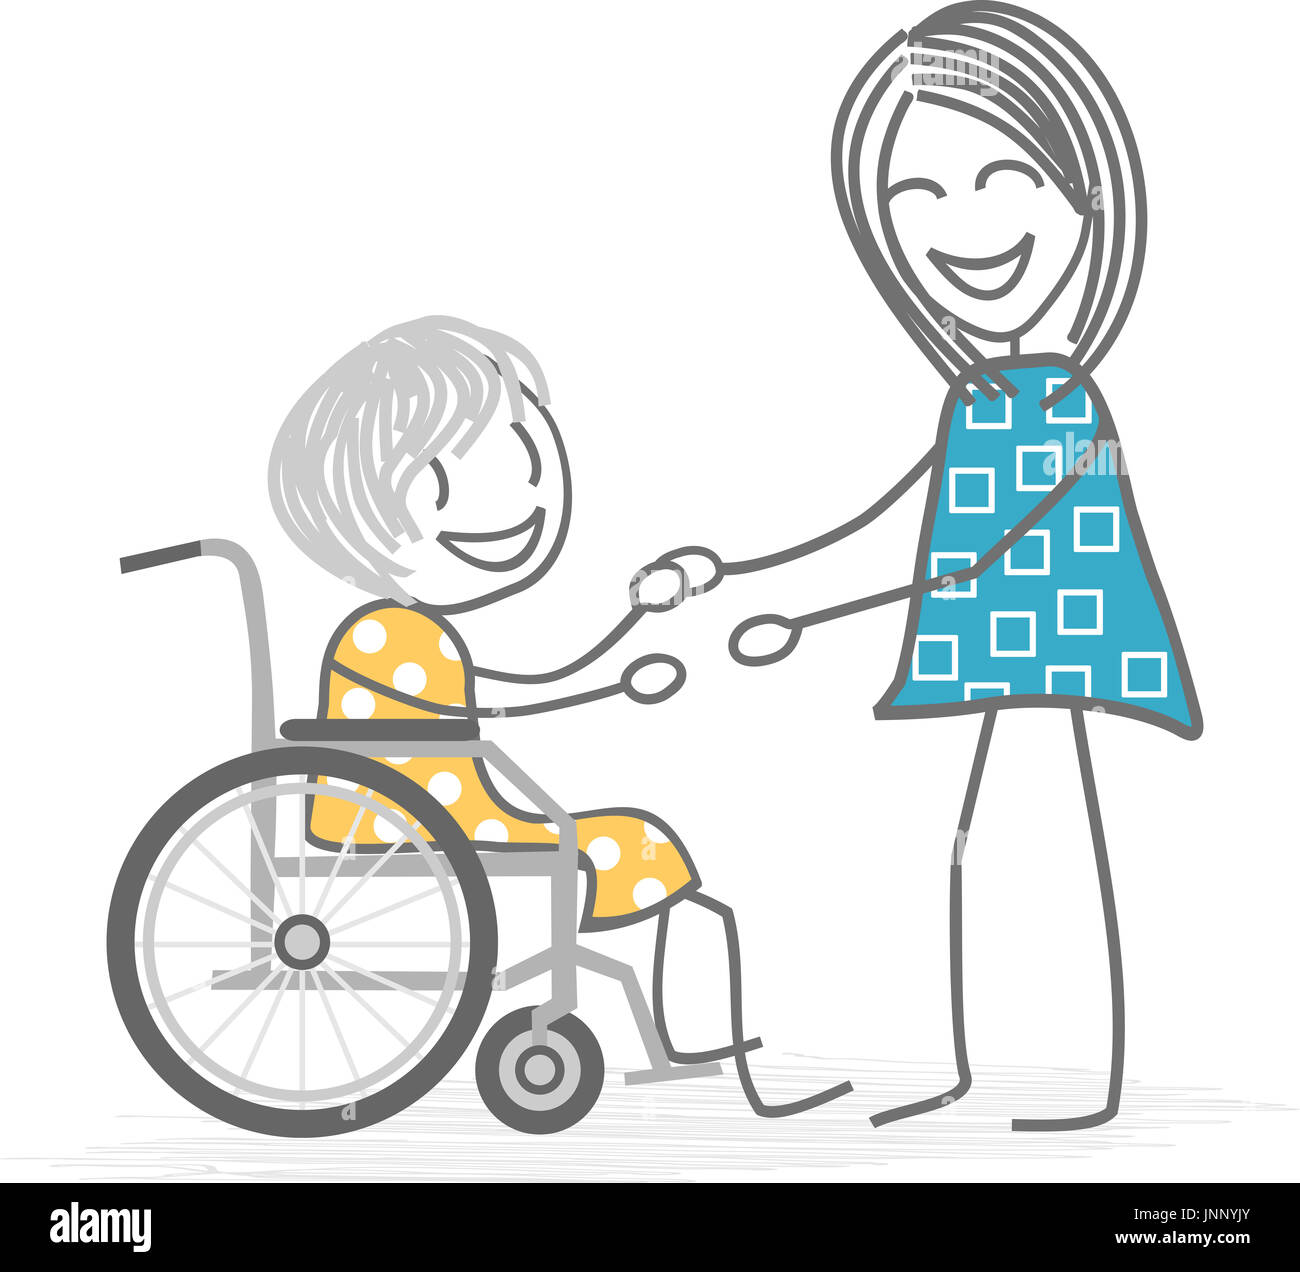 An old woman in a wheelchair is helped by a person standing, friend, nurse or family person - Stock Image